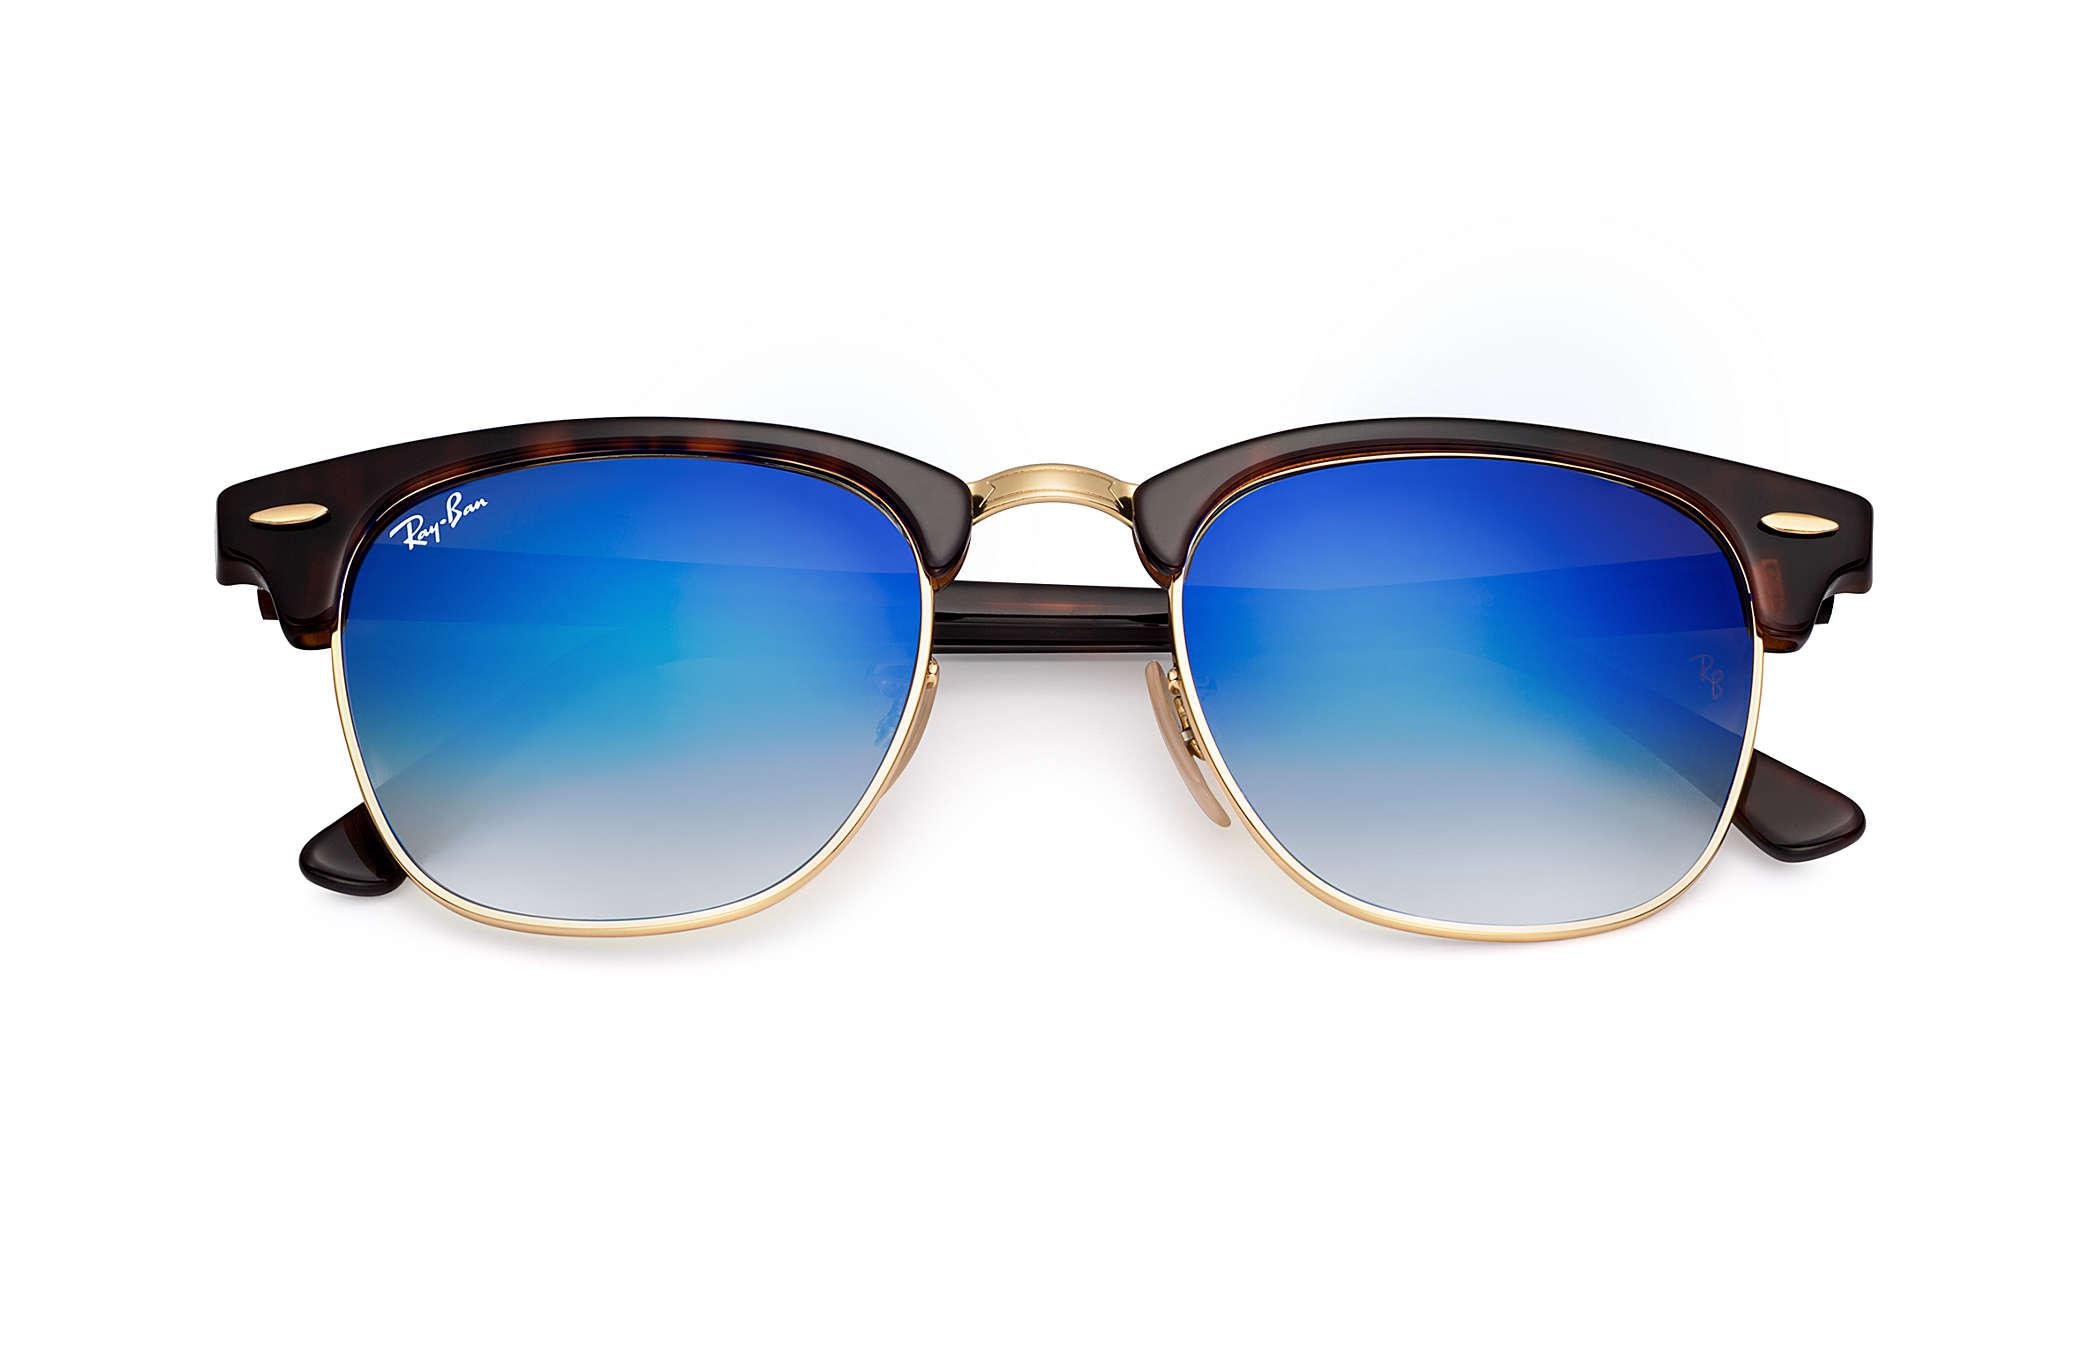 aa673b11a8 Ray-Ban Clubmaster Flash Lenses Gradient in Blue - Lyst